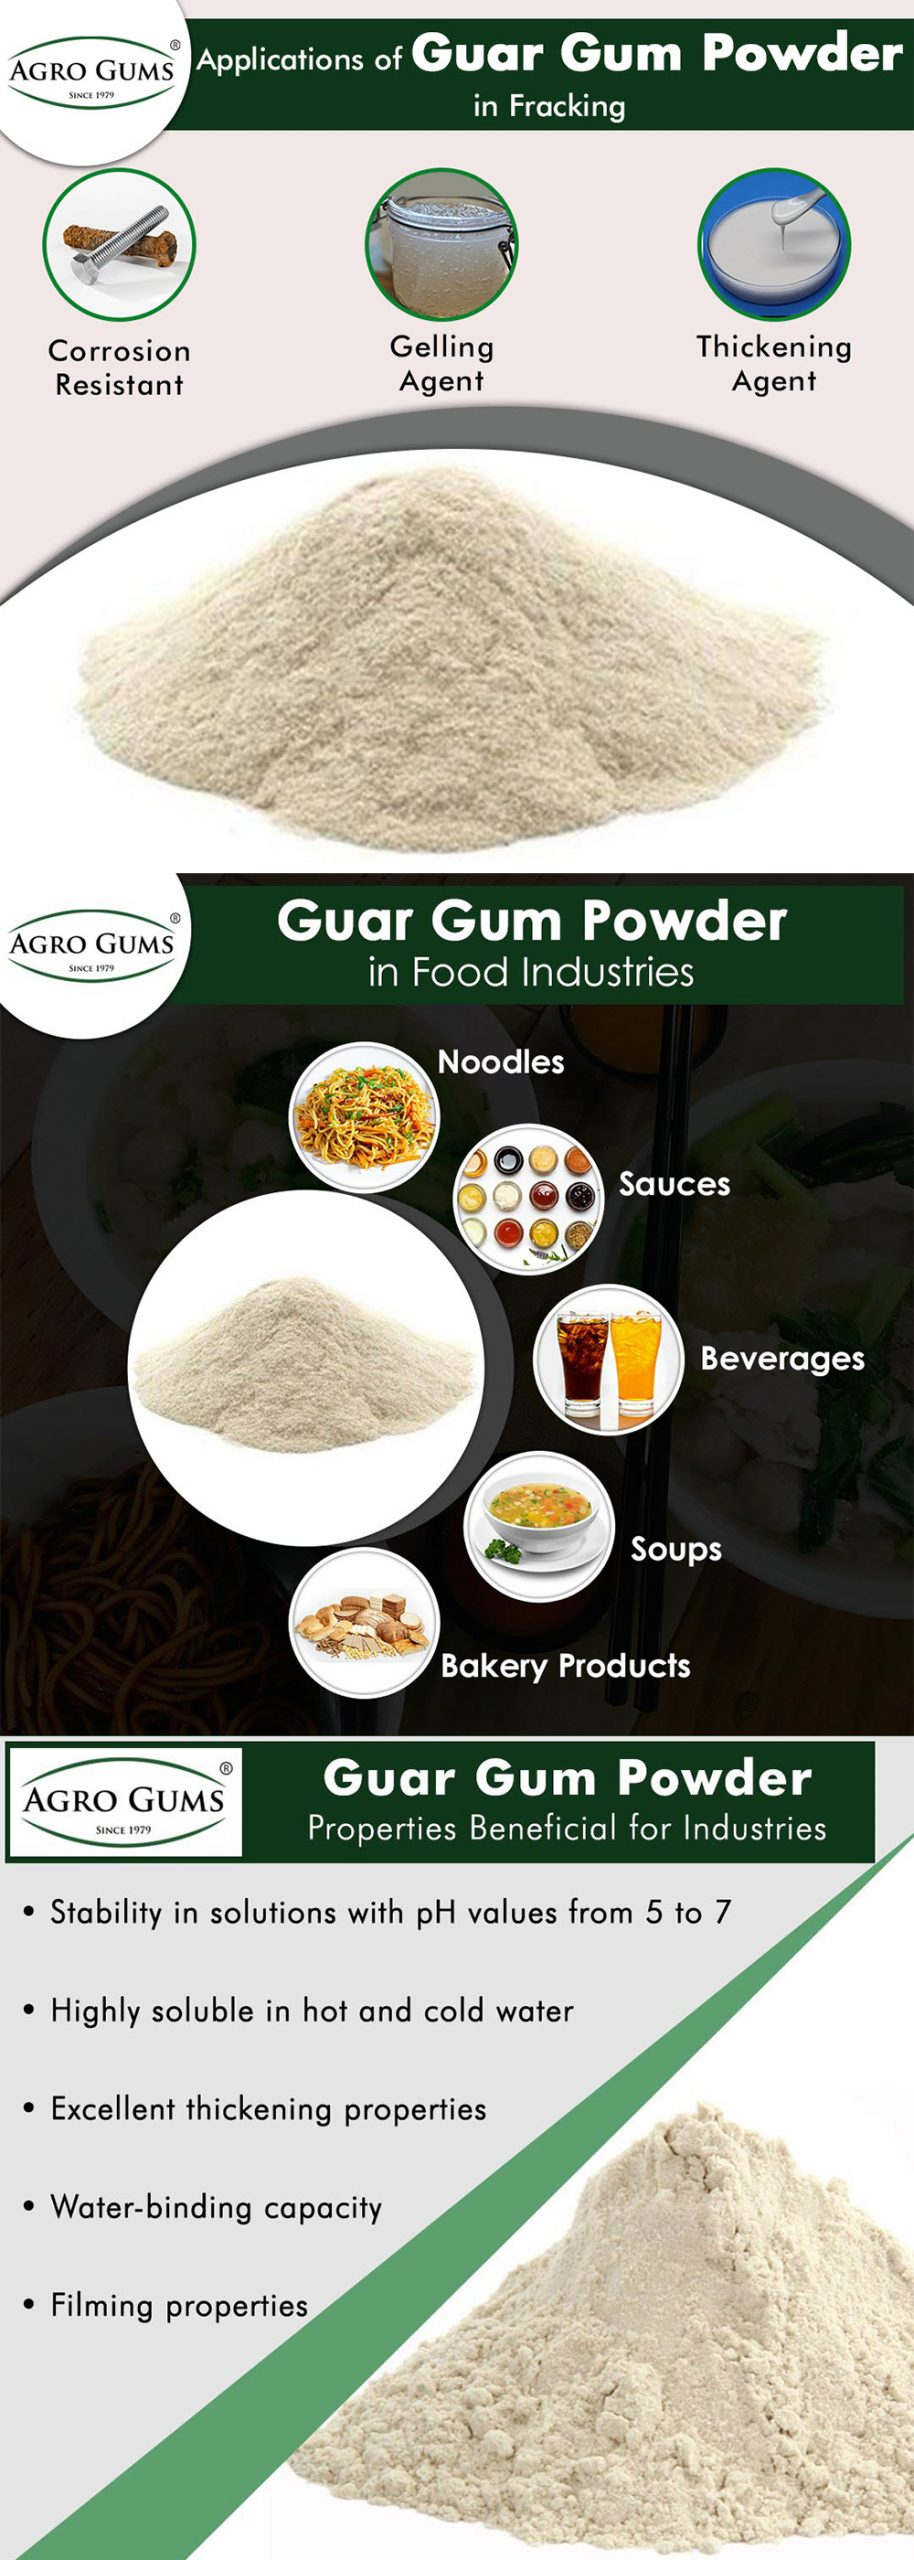 Guar Gum Powder has Multiple Beneficial Properties that can Benefit in the Food Industry